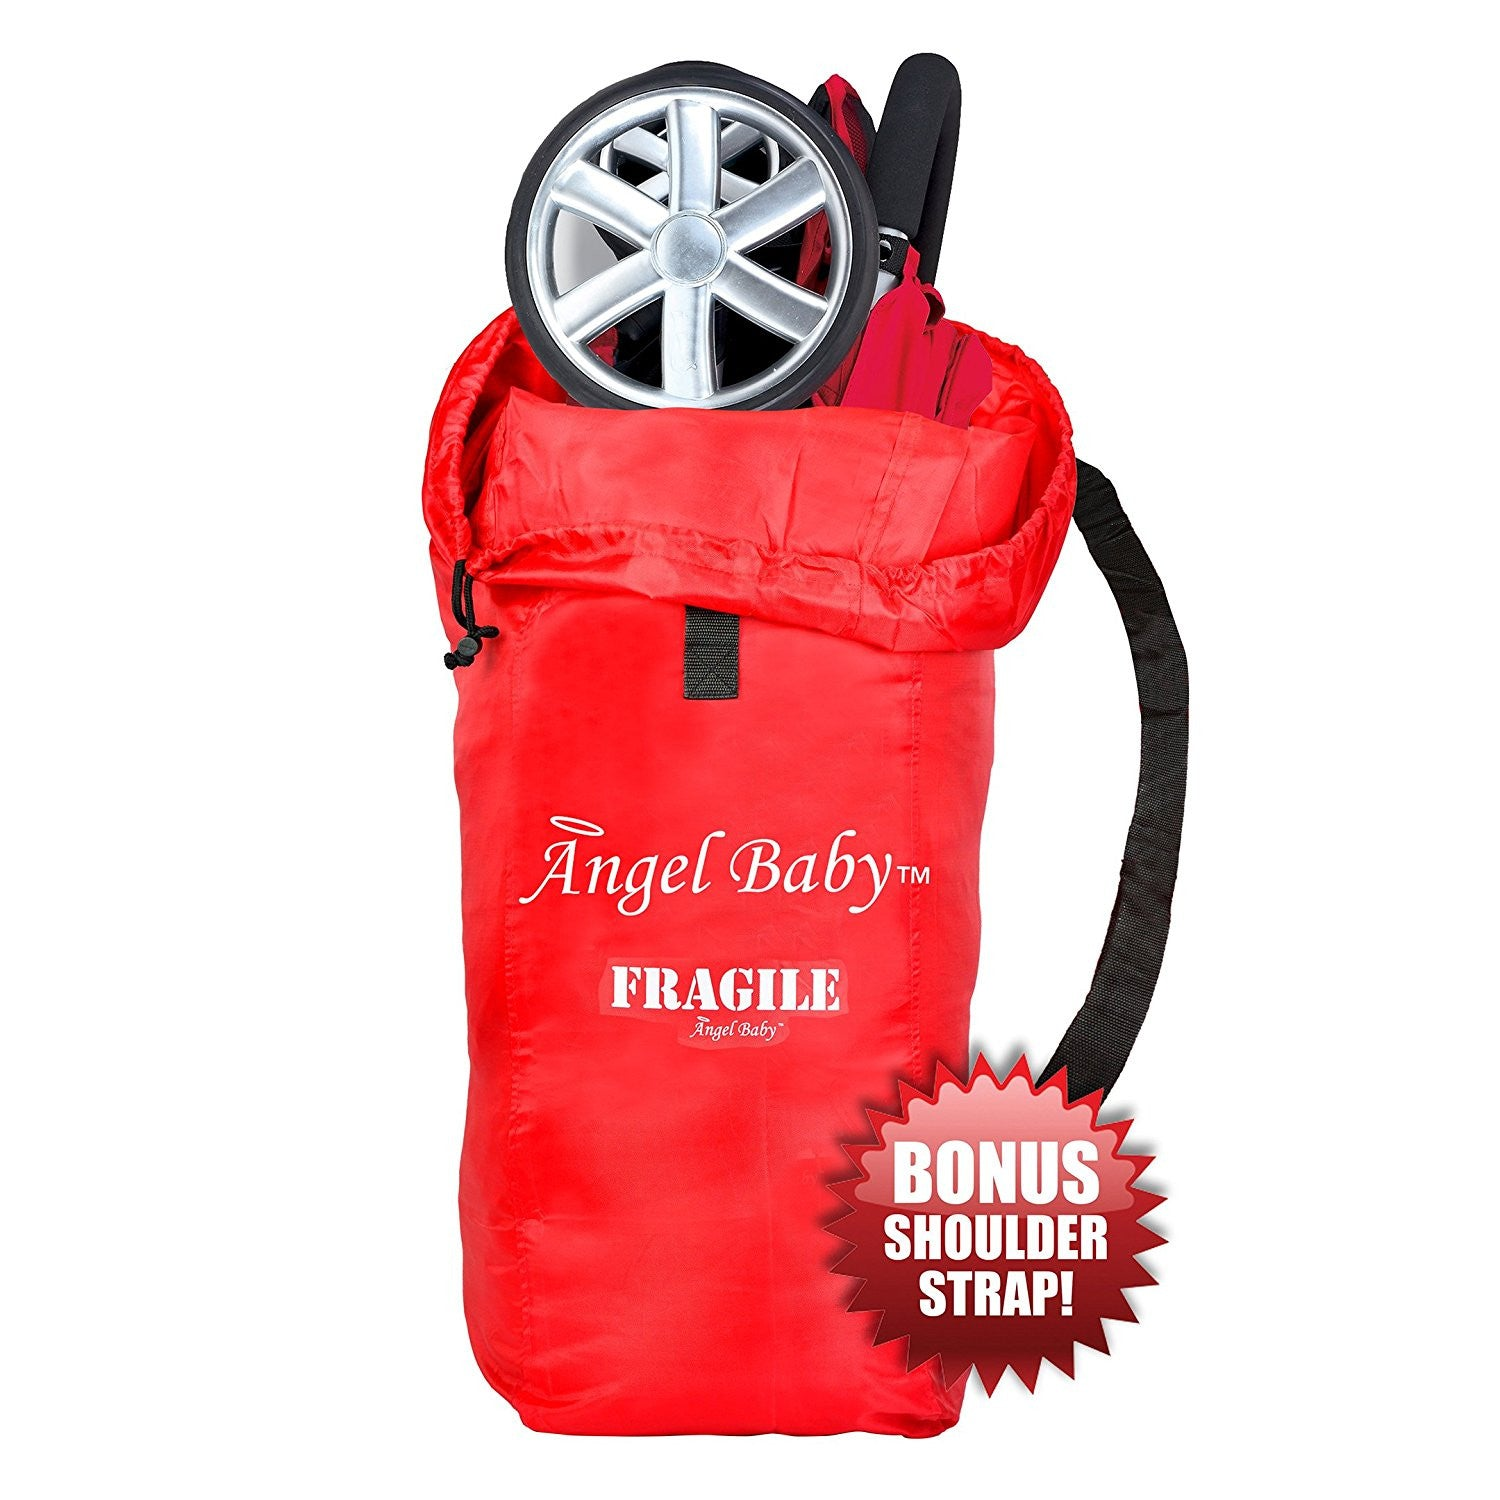 Angel Baby Red Travel Bag for Umbrella Strollers - Angel Direct Products - 1